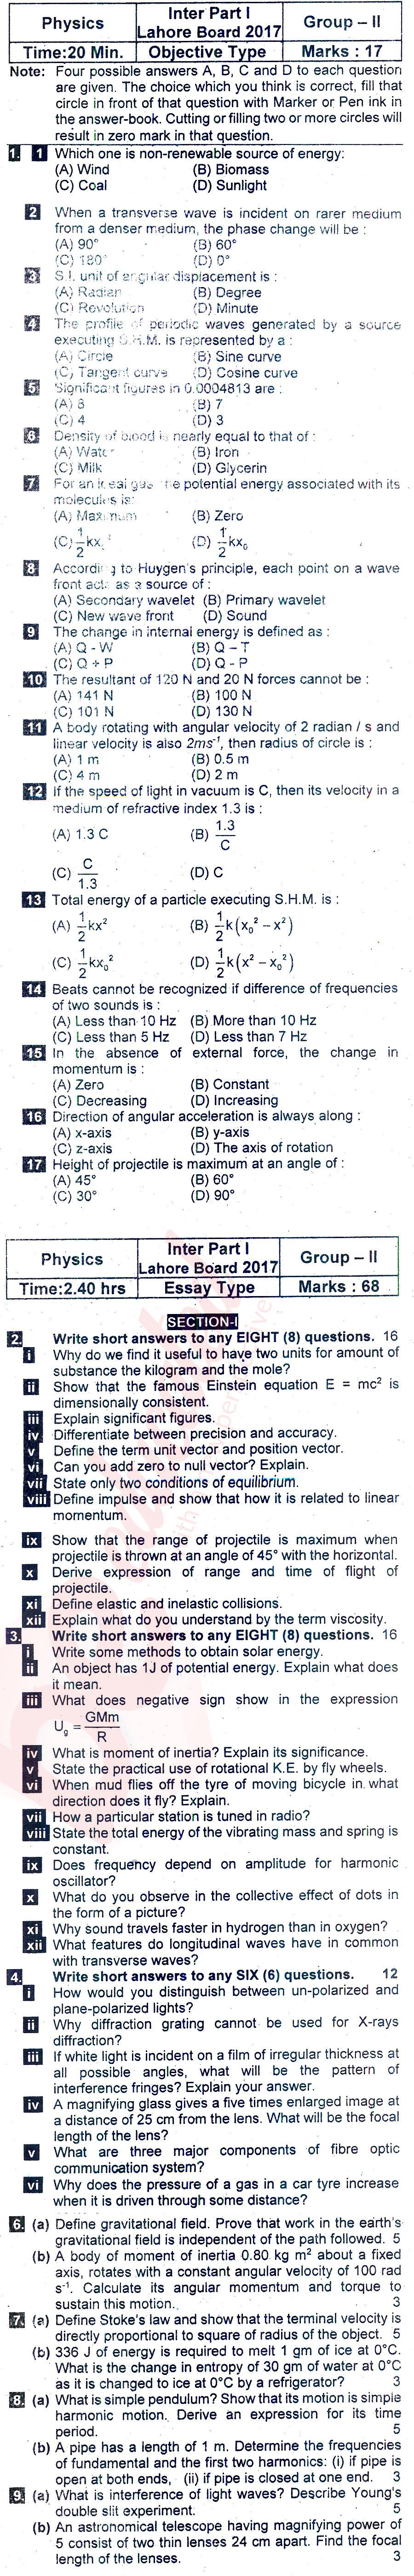 physics past papers intermediate 2 lahore board Past papers lahore board 2016 inter part 2 physics group 1 has been suggested for fsc pre medical and engineering 2nd year (intermediate part two) in board of intermediate and secondary education lahore (bise lhr).